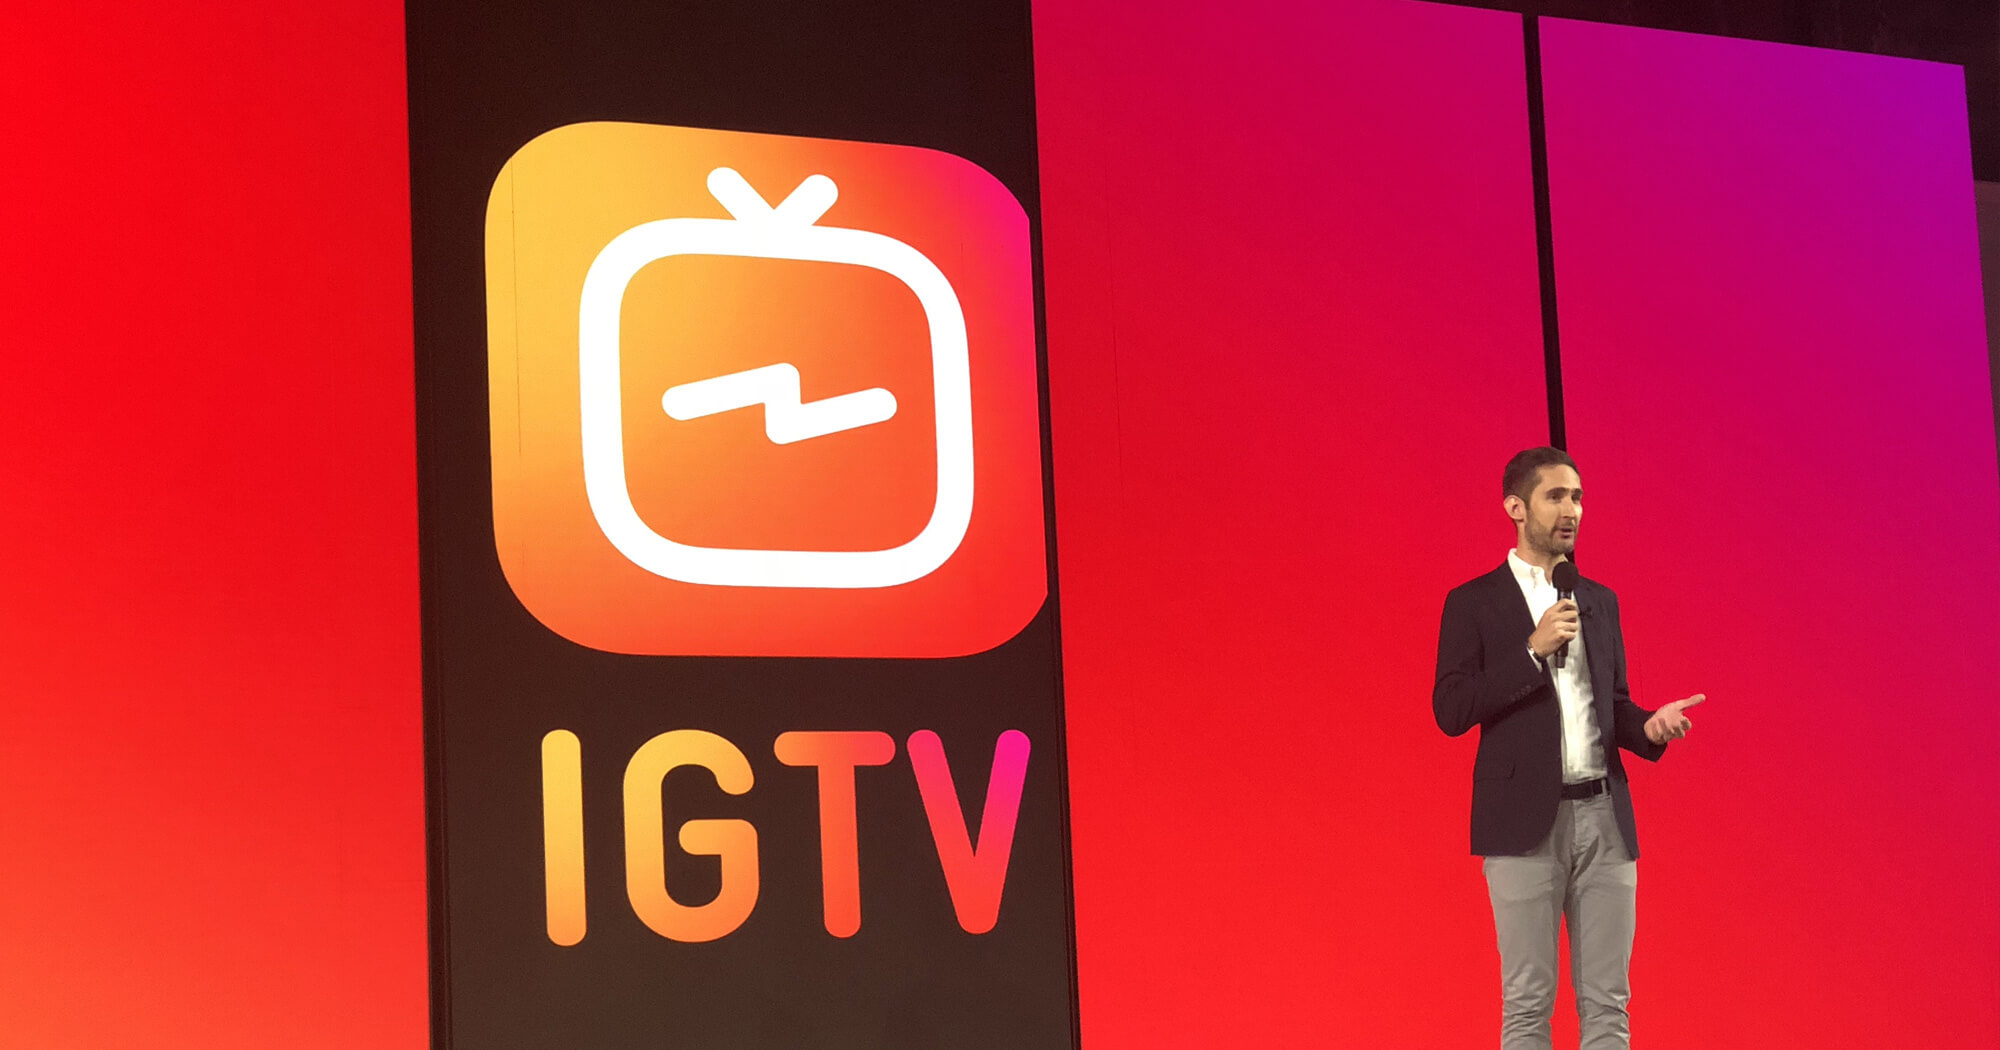 Why Instagram's IGTV Will Never Take Over YouTube